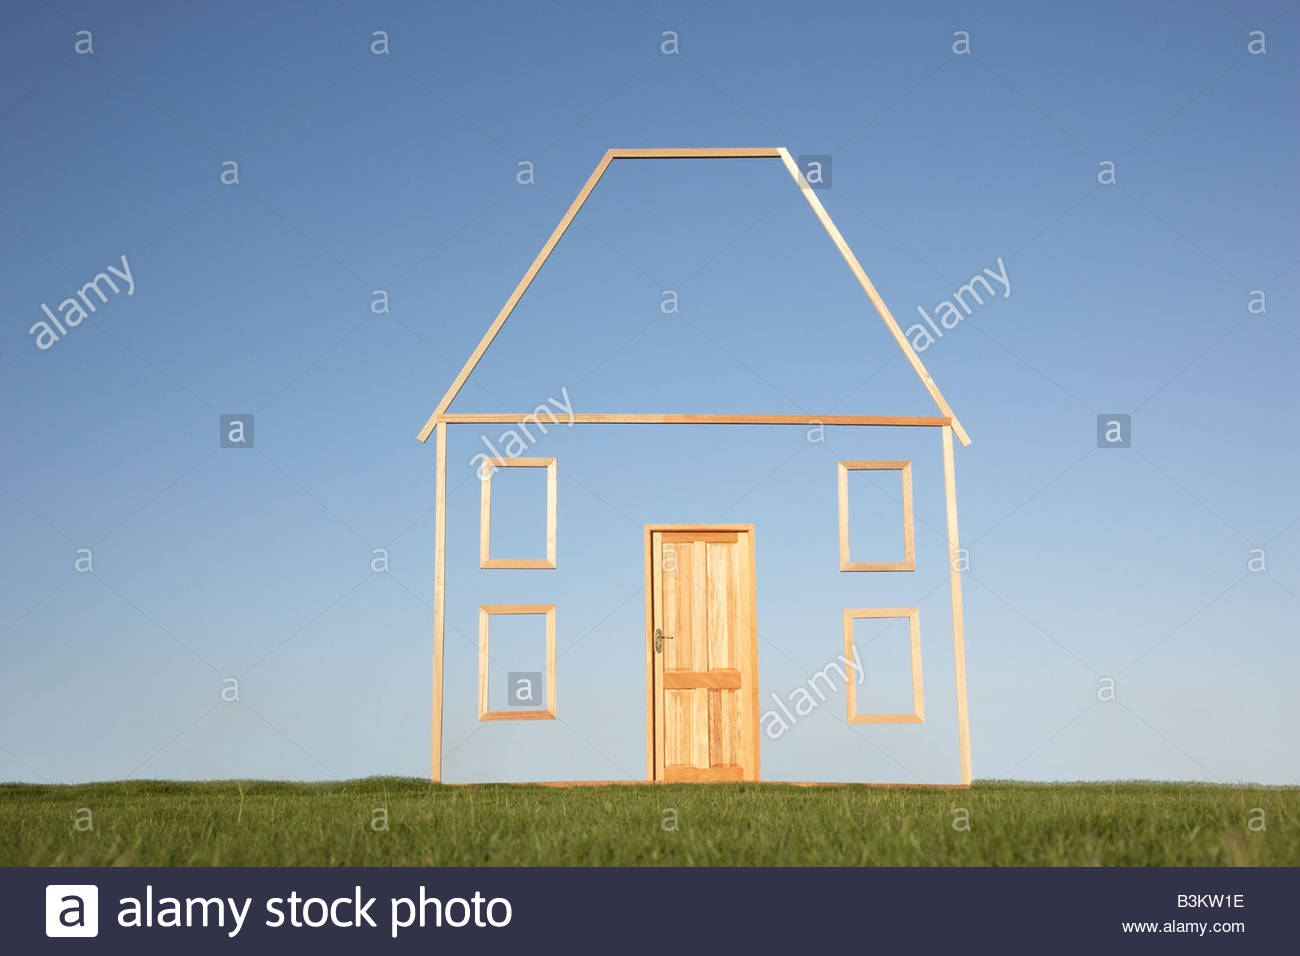 Vertical house outline in field - Stock Image